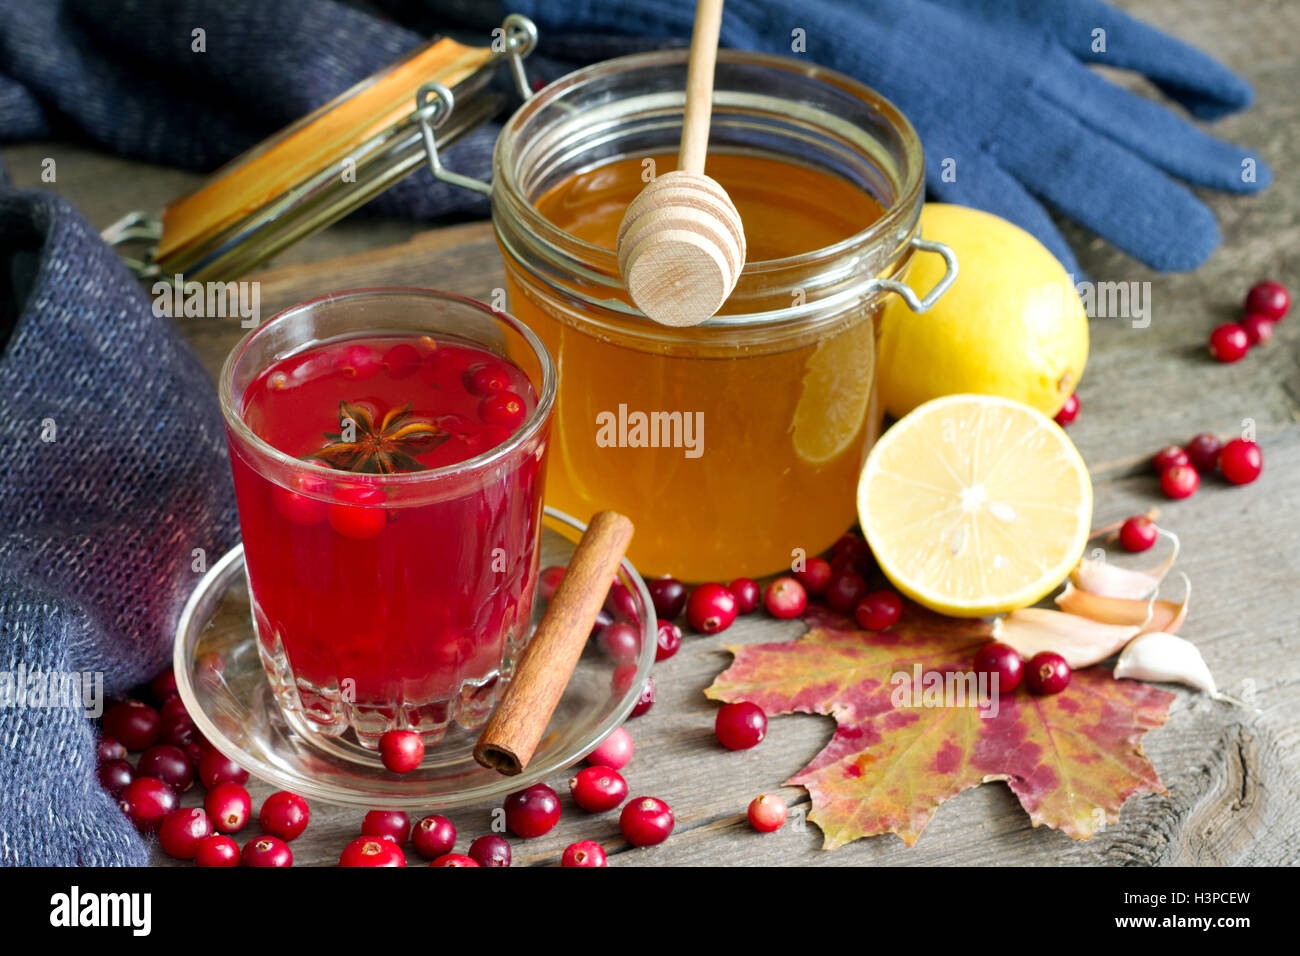 Cranberry tea, honey and lemon products to Strengthen immunity - Stock Image